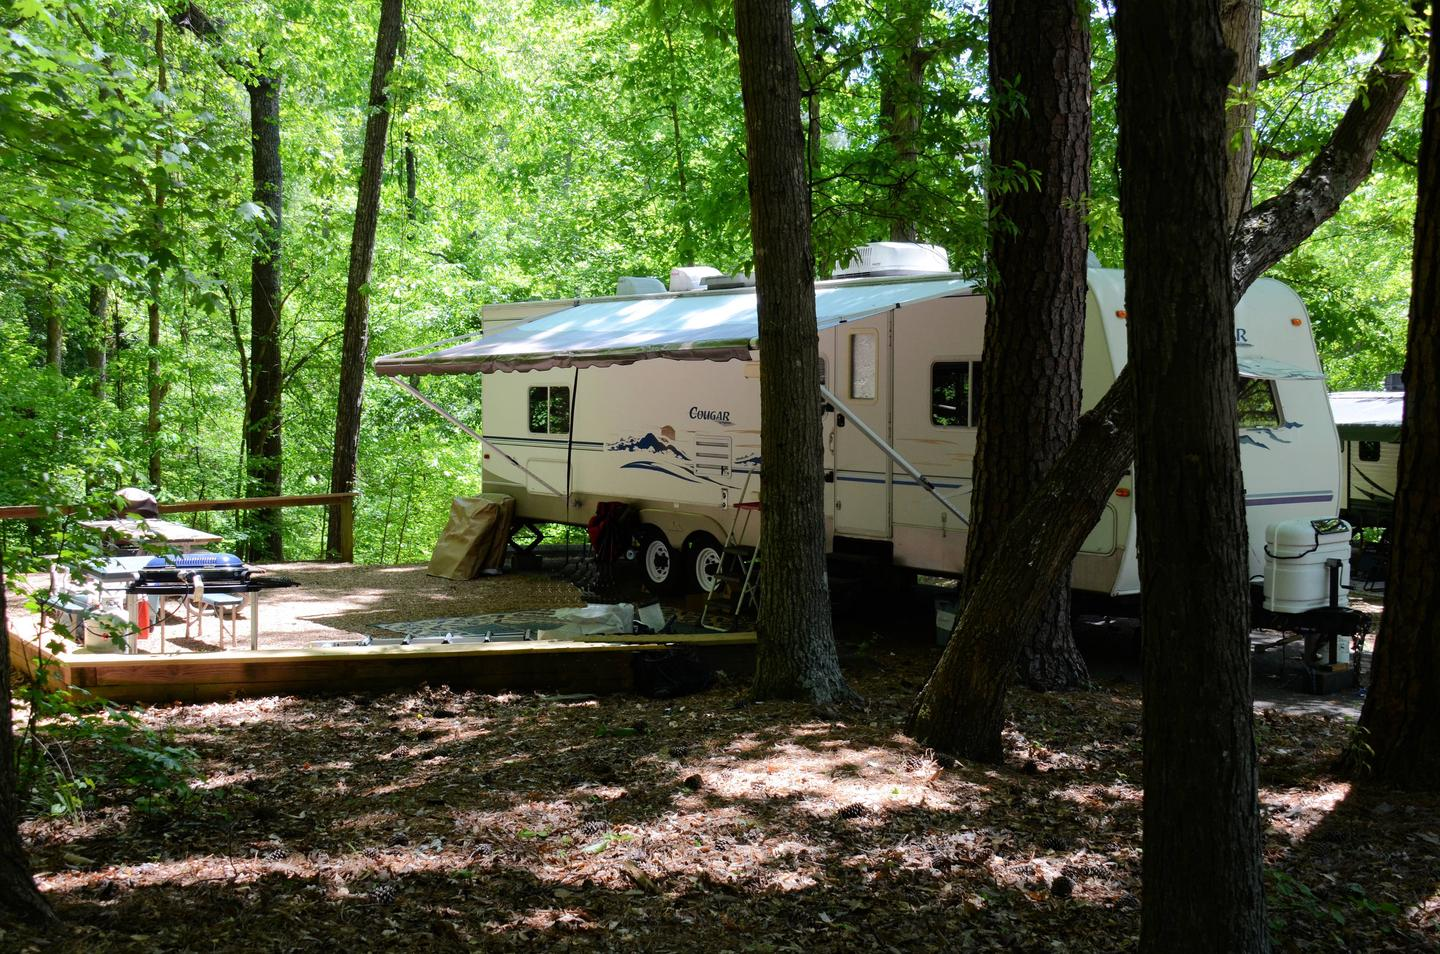 Campsite view, awning-side clearance.McKinney Campground, campsite 101.